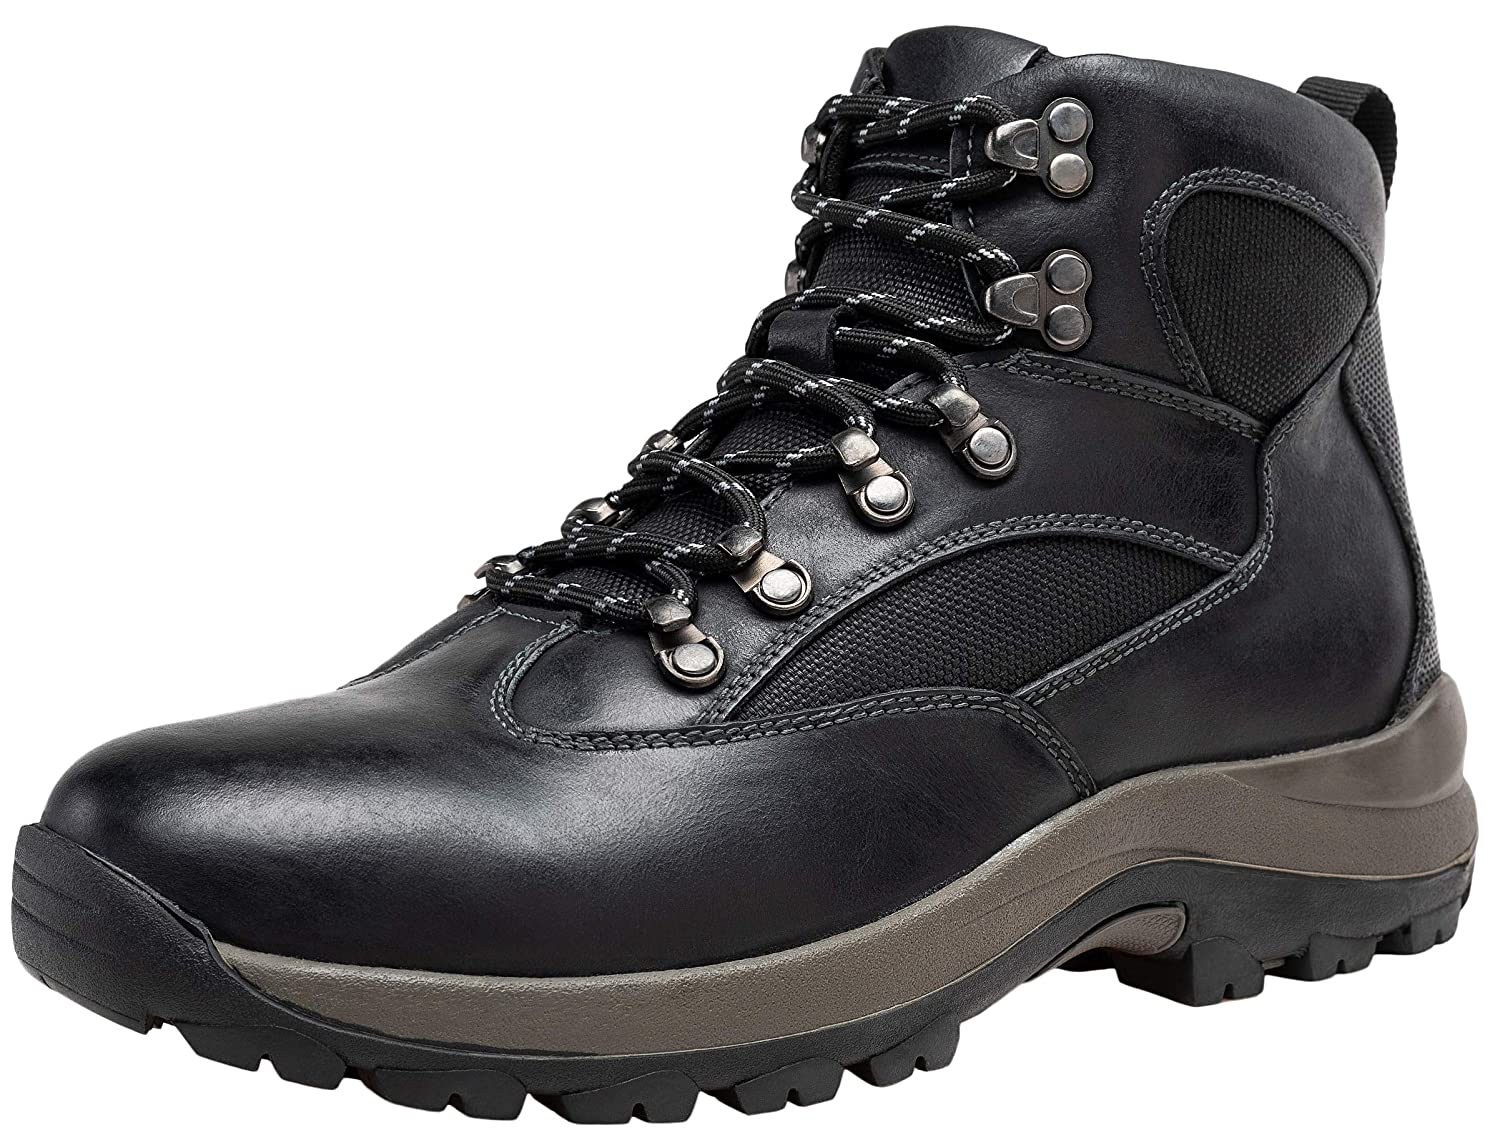 JOUSEN Mens Hiking Boot Leather Work Boots for Men Waterproof Hiking Boot